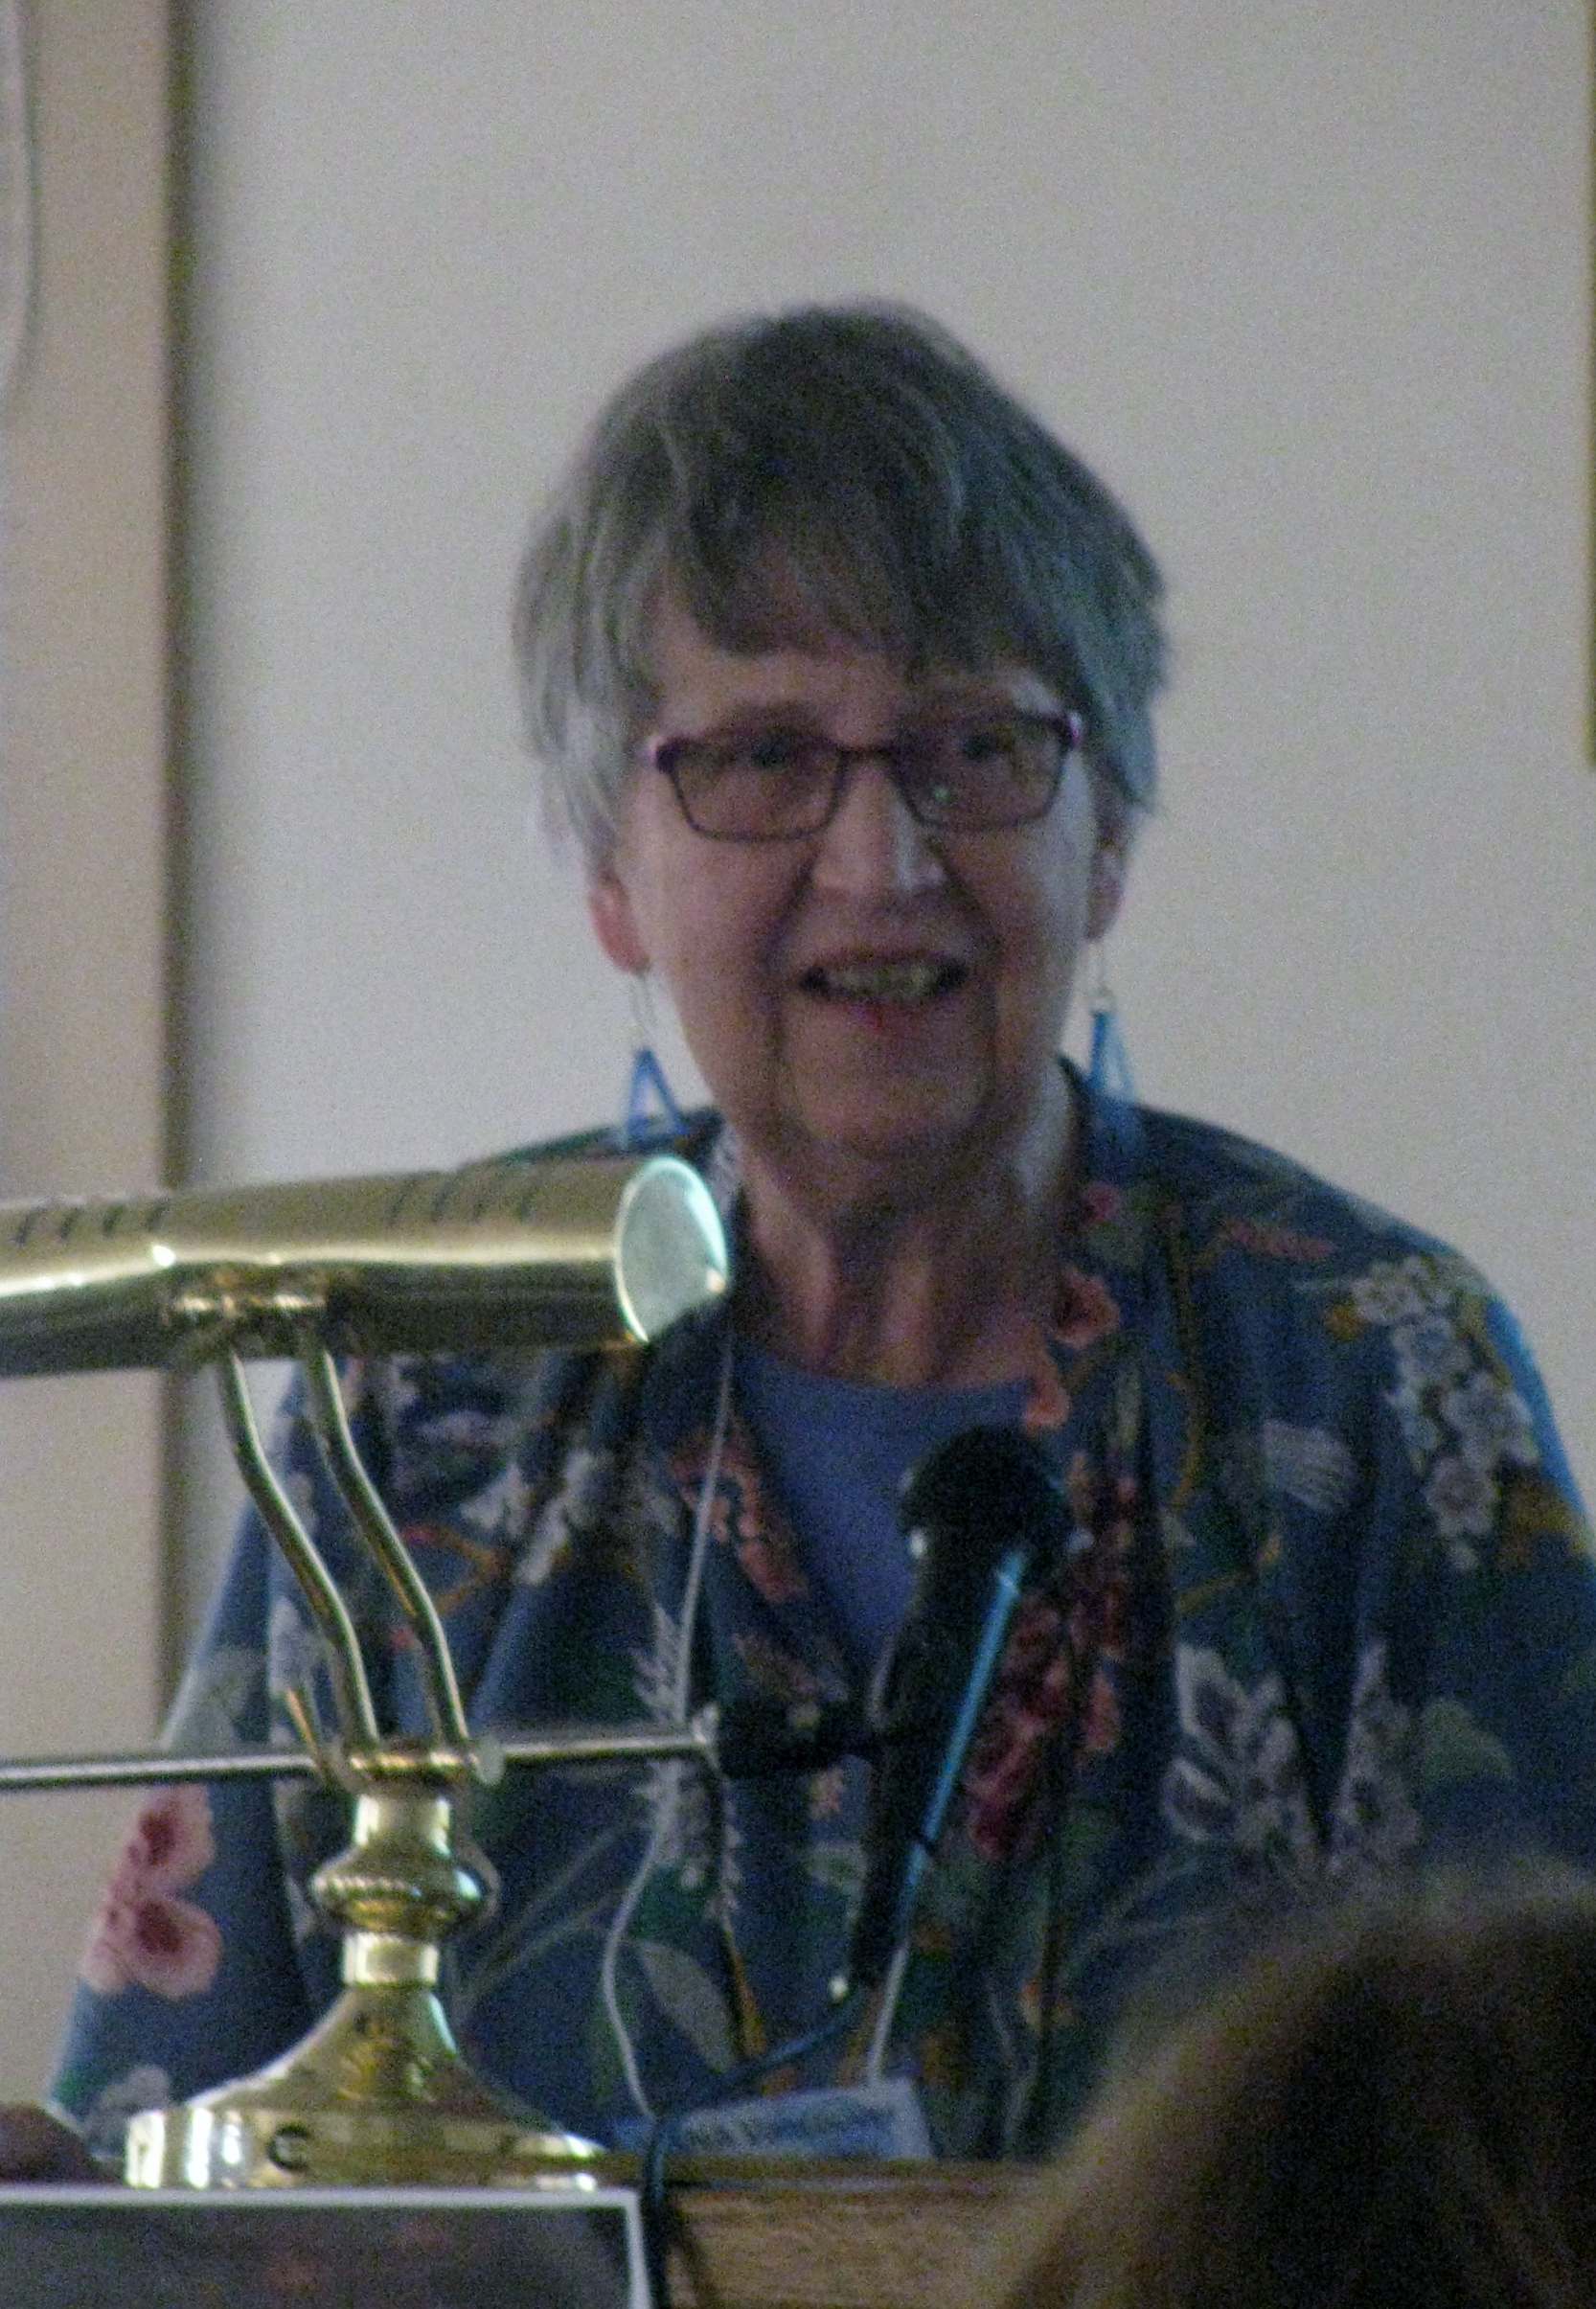 Sheila speaking in Vancouver, 2 March 2019